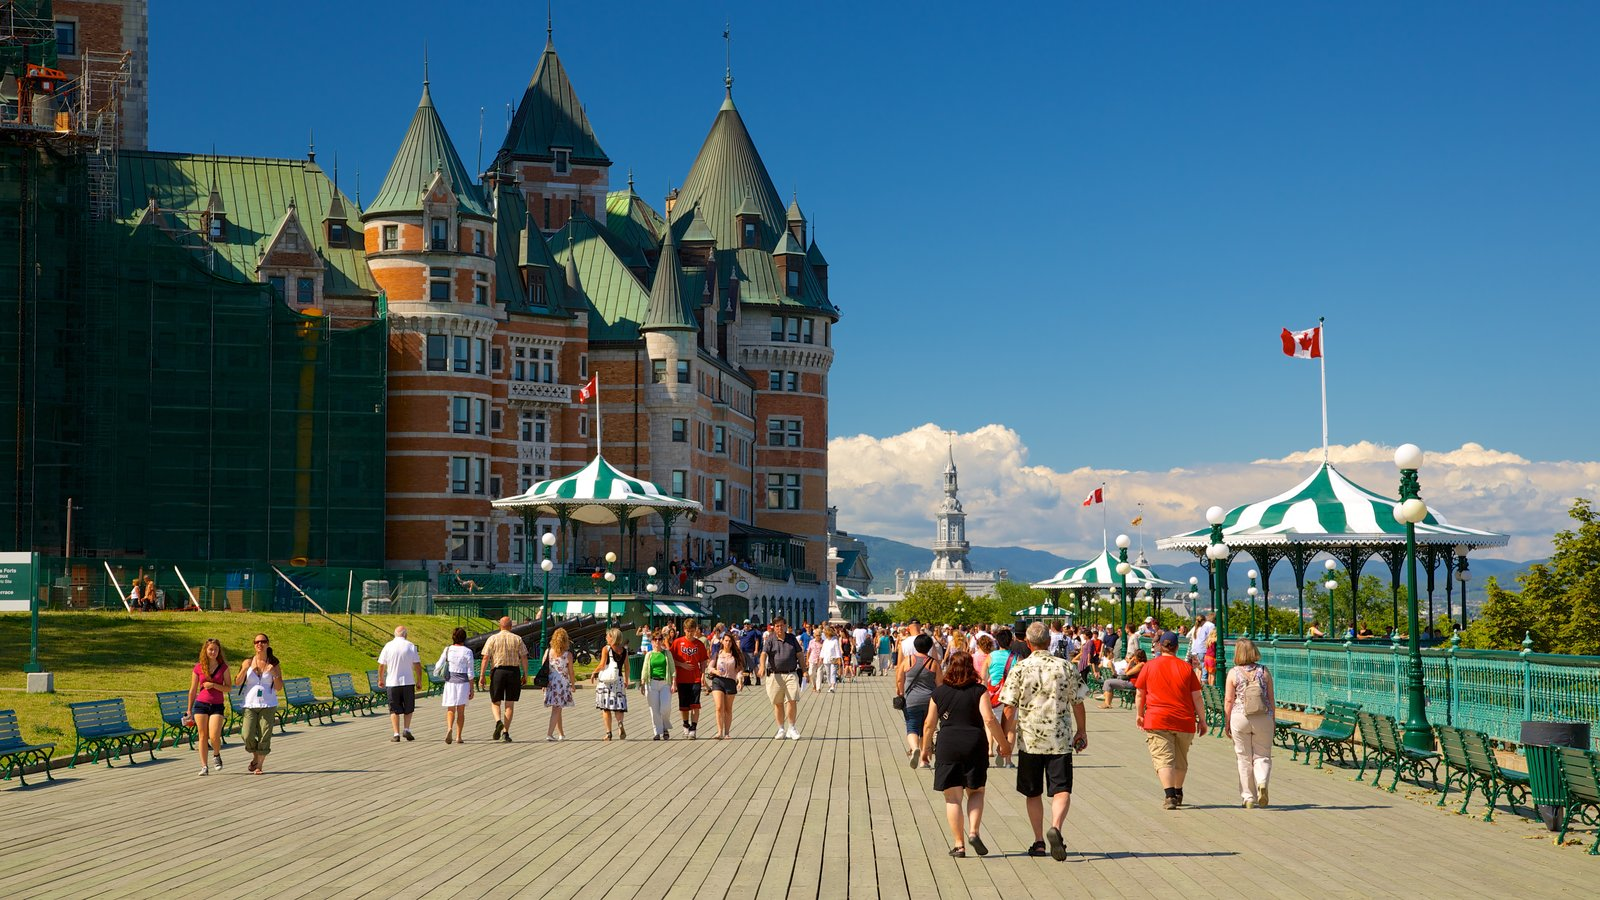 Parks Canada\'s Dufferin Terrace which includes heritage architecture, a city and a castle